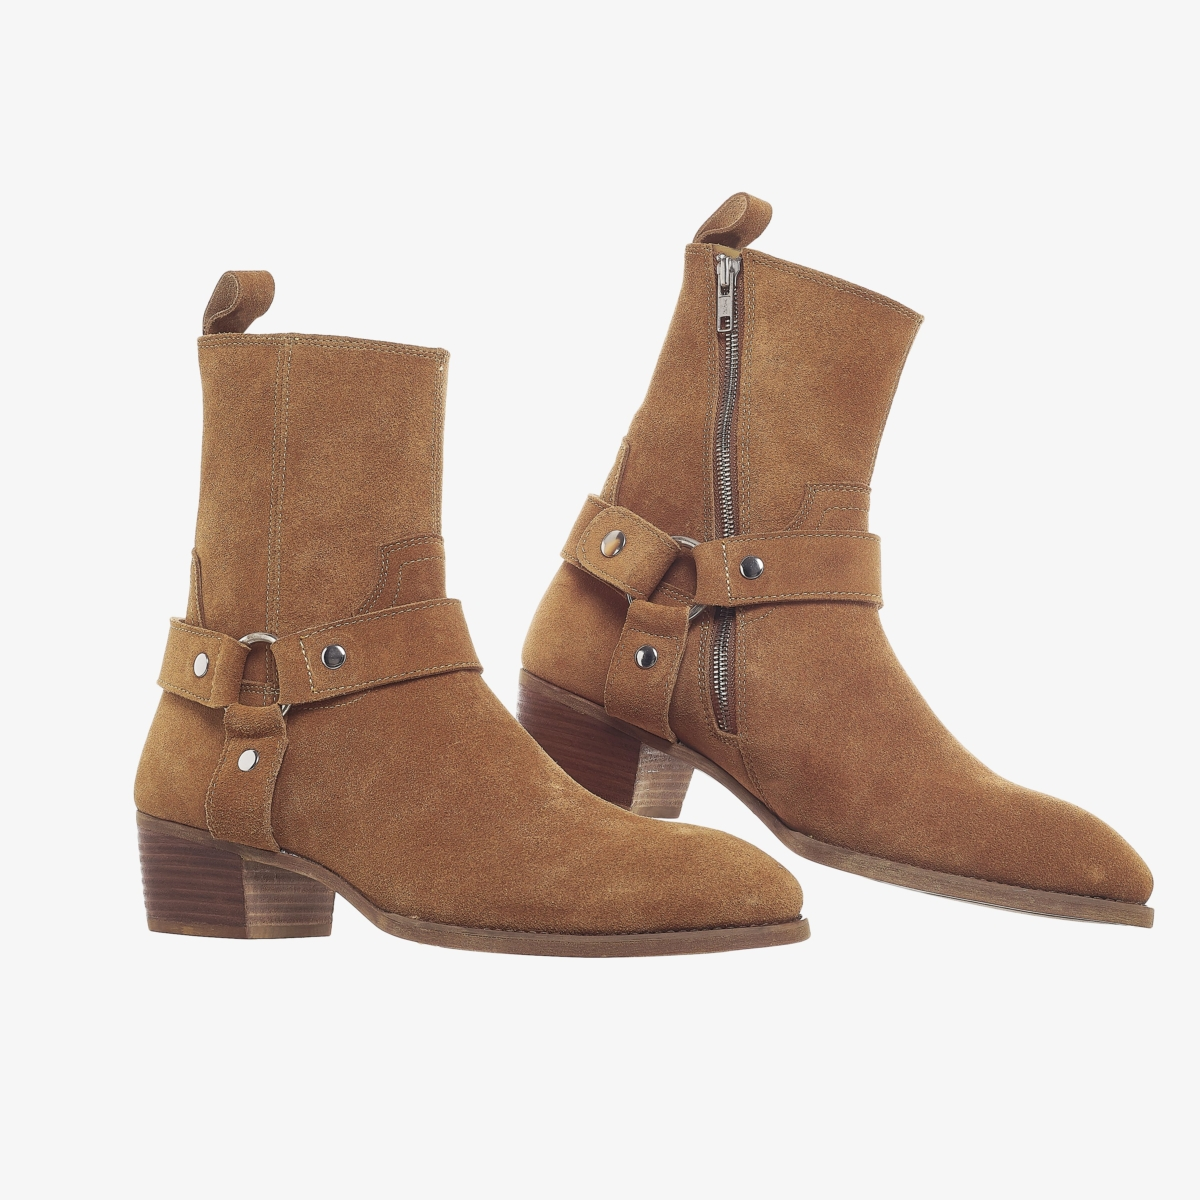 Suede Harness Boots In Tobacco Suede Harness Boots In Tobaco SS2020 2 1